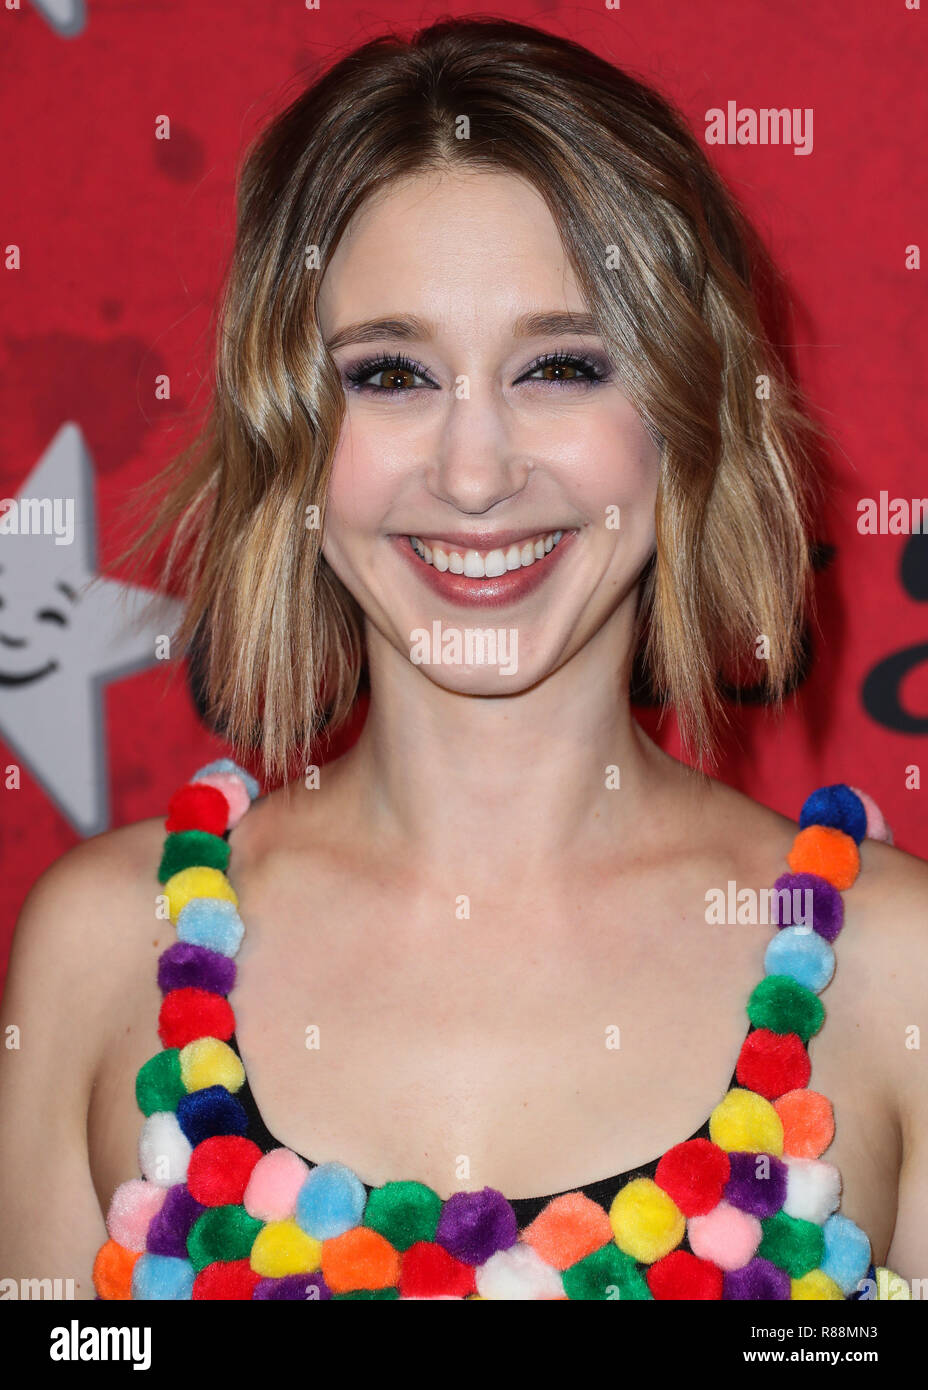 HOLLYWOOD, LOS ANGELES, CA, USA - OCTOBER 27: Taissa Farmiga at Just Jared's 7th Annual Halloween Party held at Goya Studios on October 27, 2018 in Hollywood, Los Angeles, California, United States. (Photo by Xavier Collin/Image Press Agency) - Stock Image